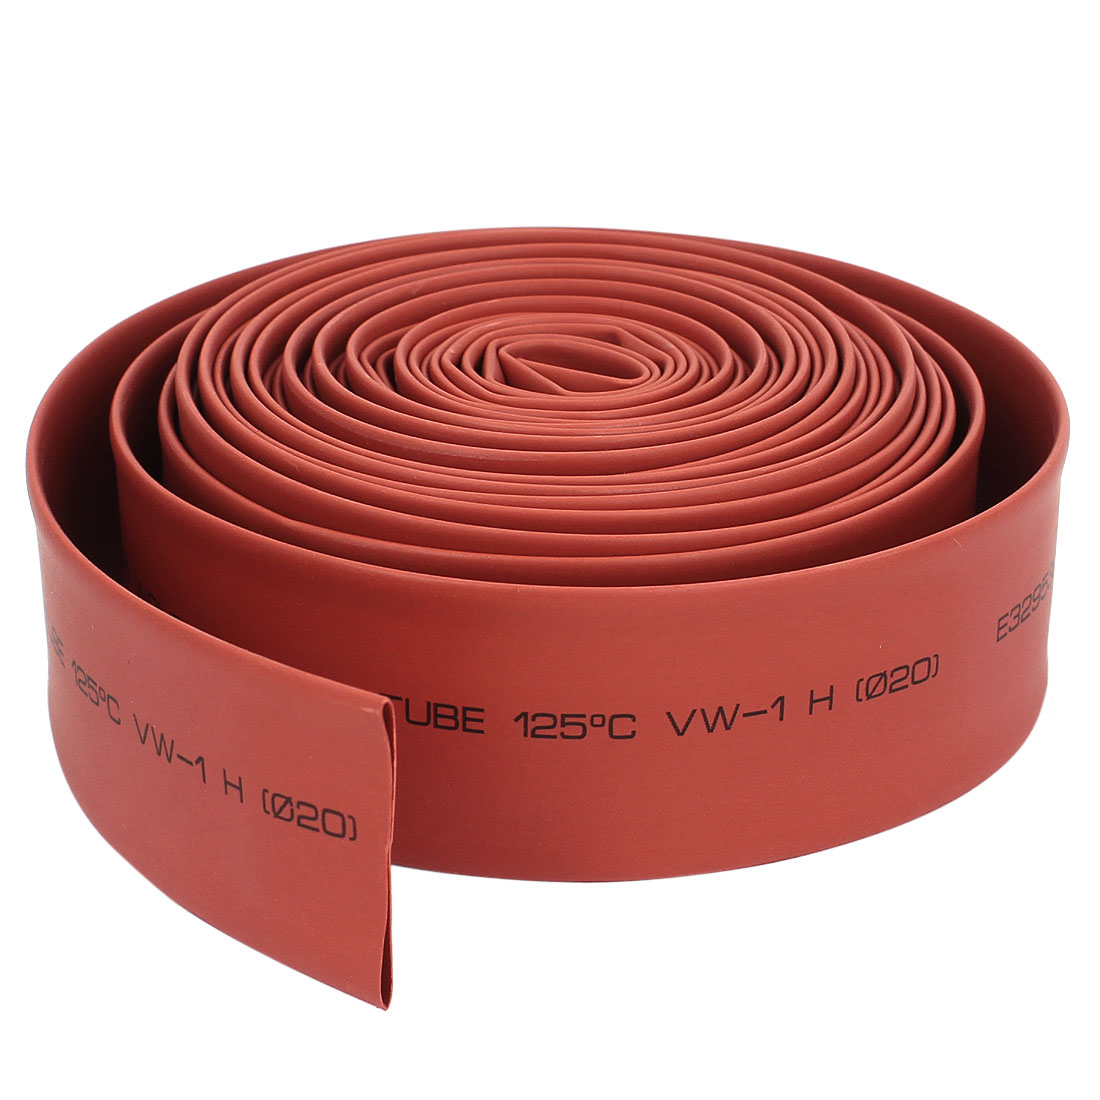 20mm Polyolefin 2:1 Heat Shrink Tubing Cable Sleeve 18 Ft Red